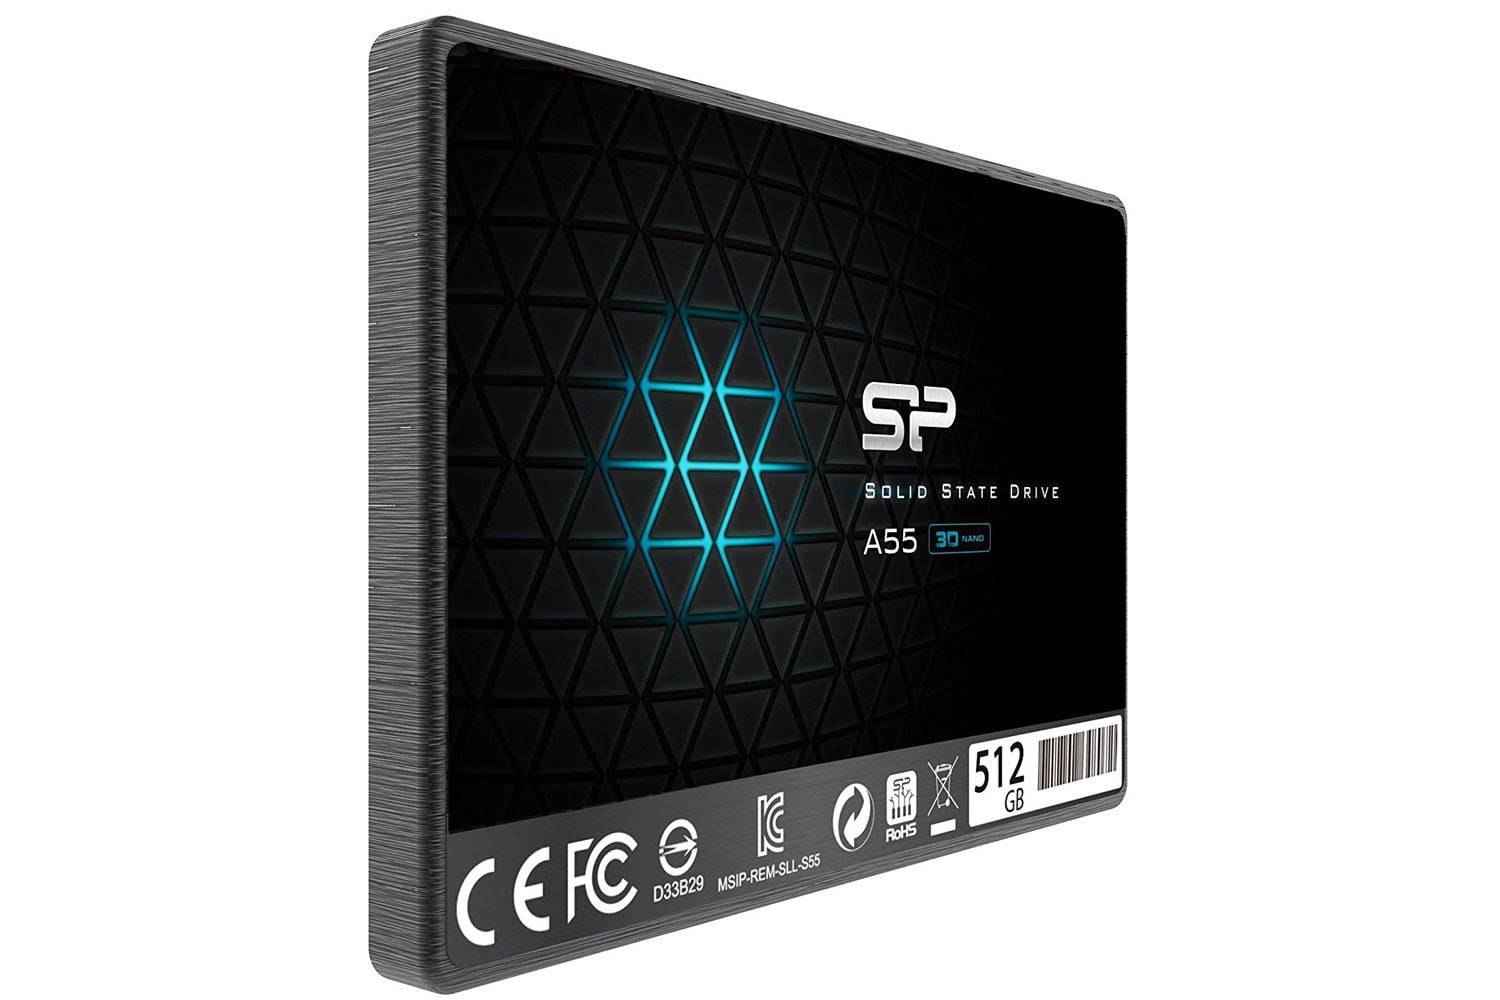 high refresh rate gaming pc build for under 1000 spssd